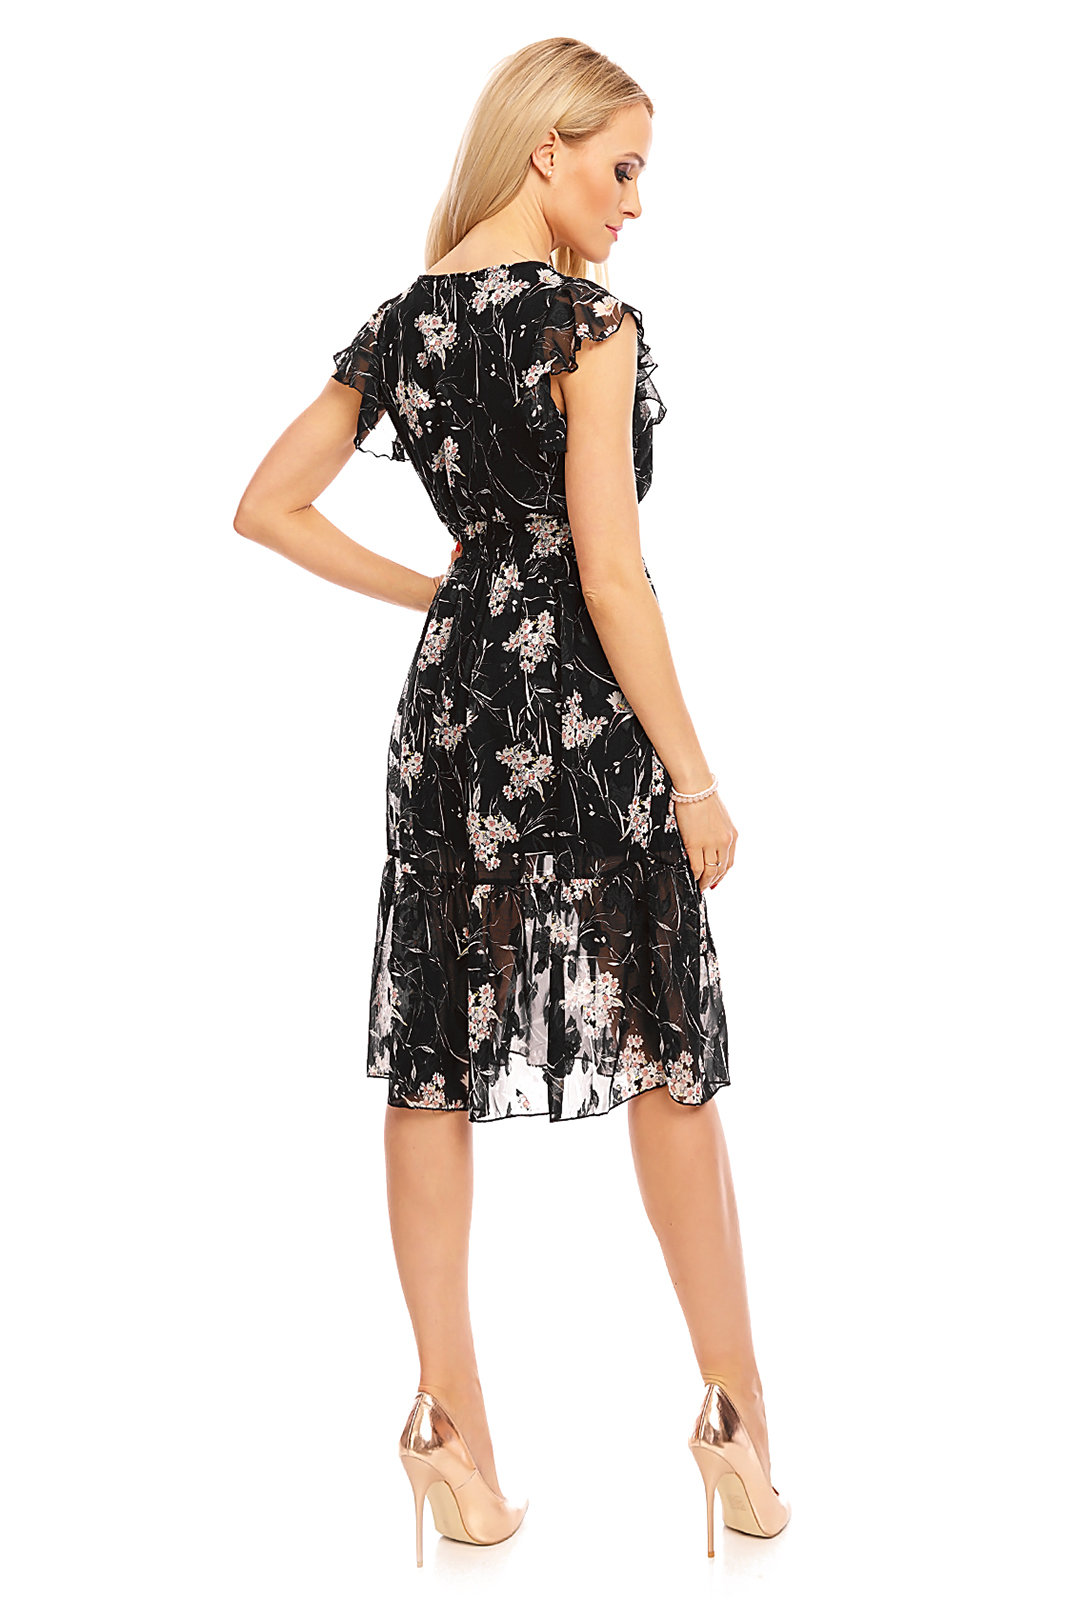 Dress In Vogue V897 Black